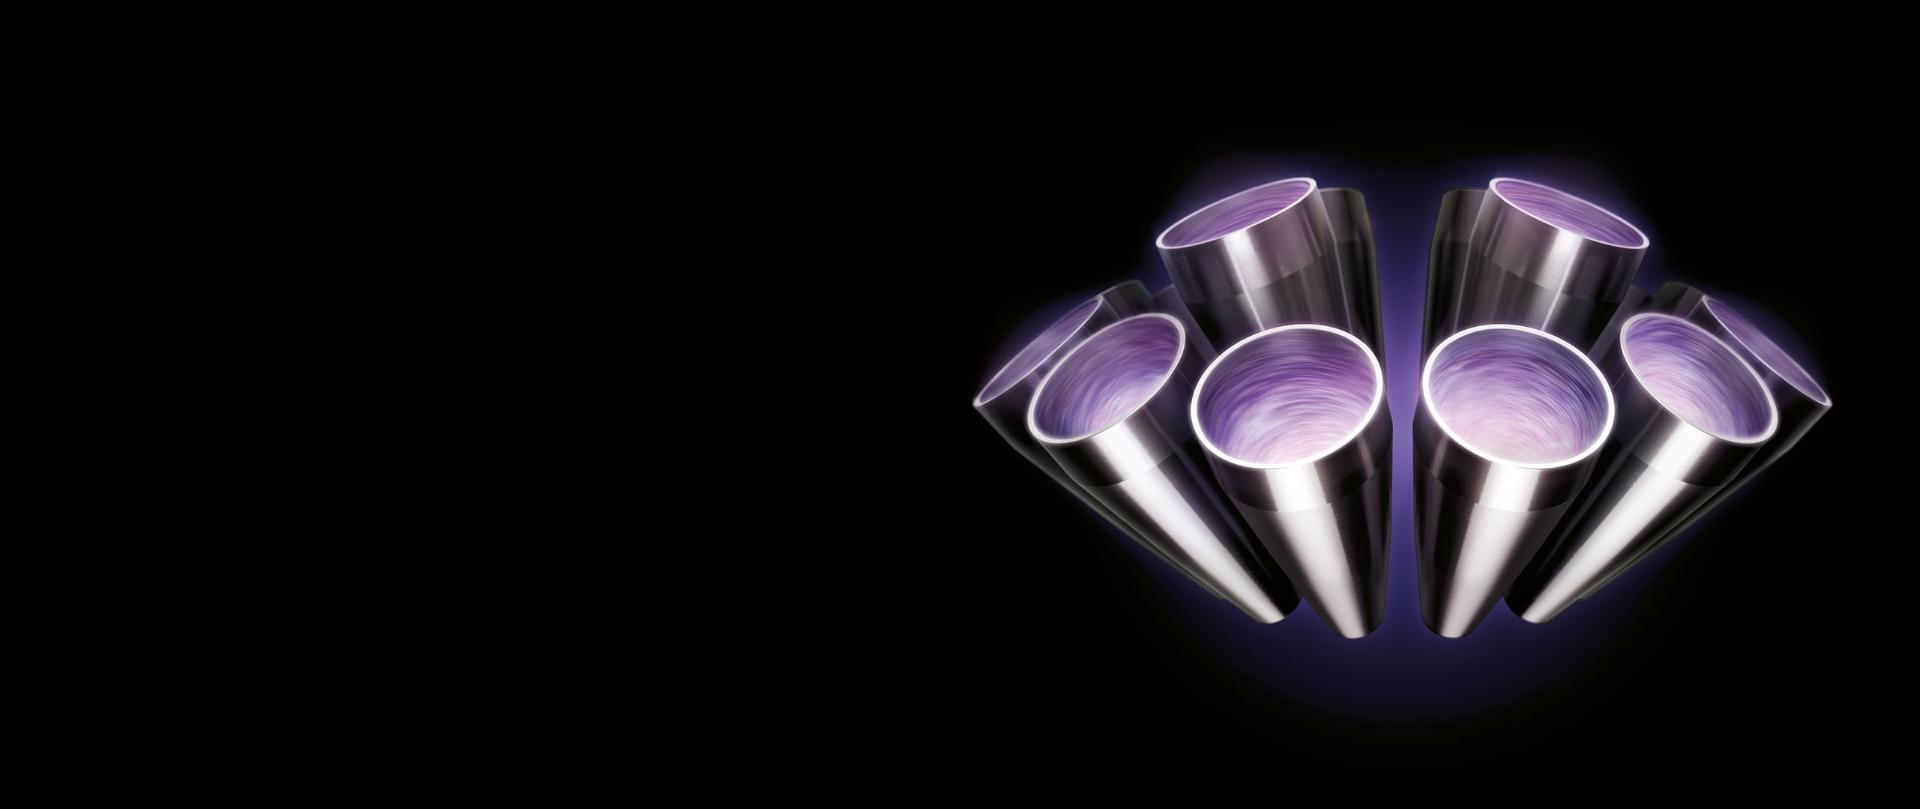 Animations of Dyson Cyclone V10™ technology